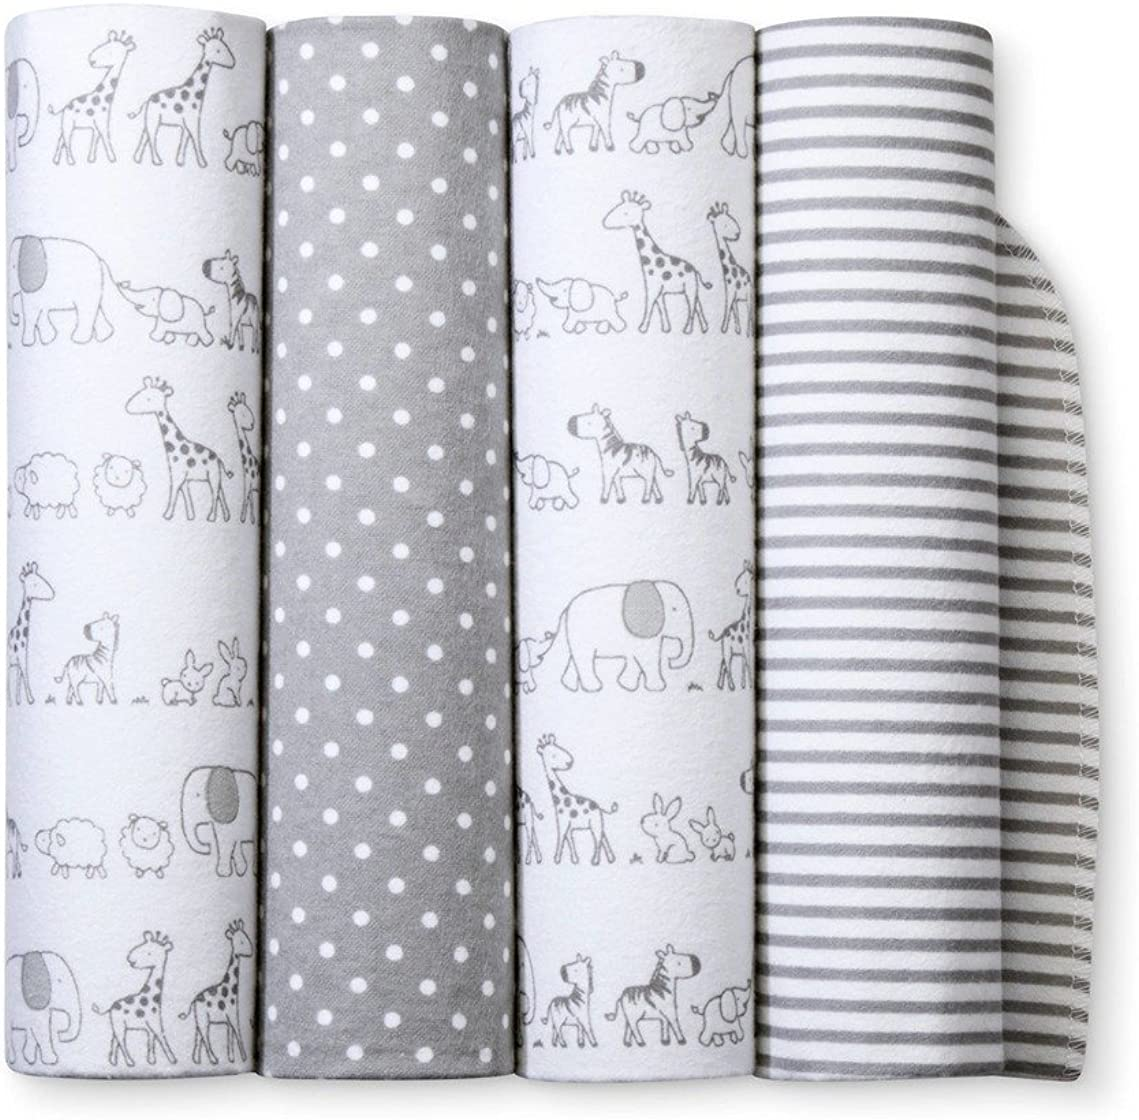 Flannel Receiving Baby Blankets Two by Two 4pack - Cloud Island - Gray, 30 inches L x 30 inches W